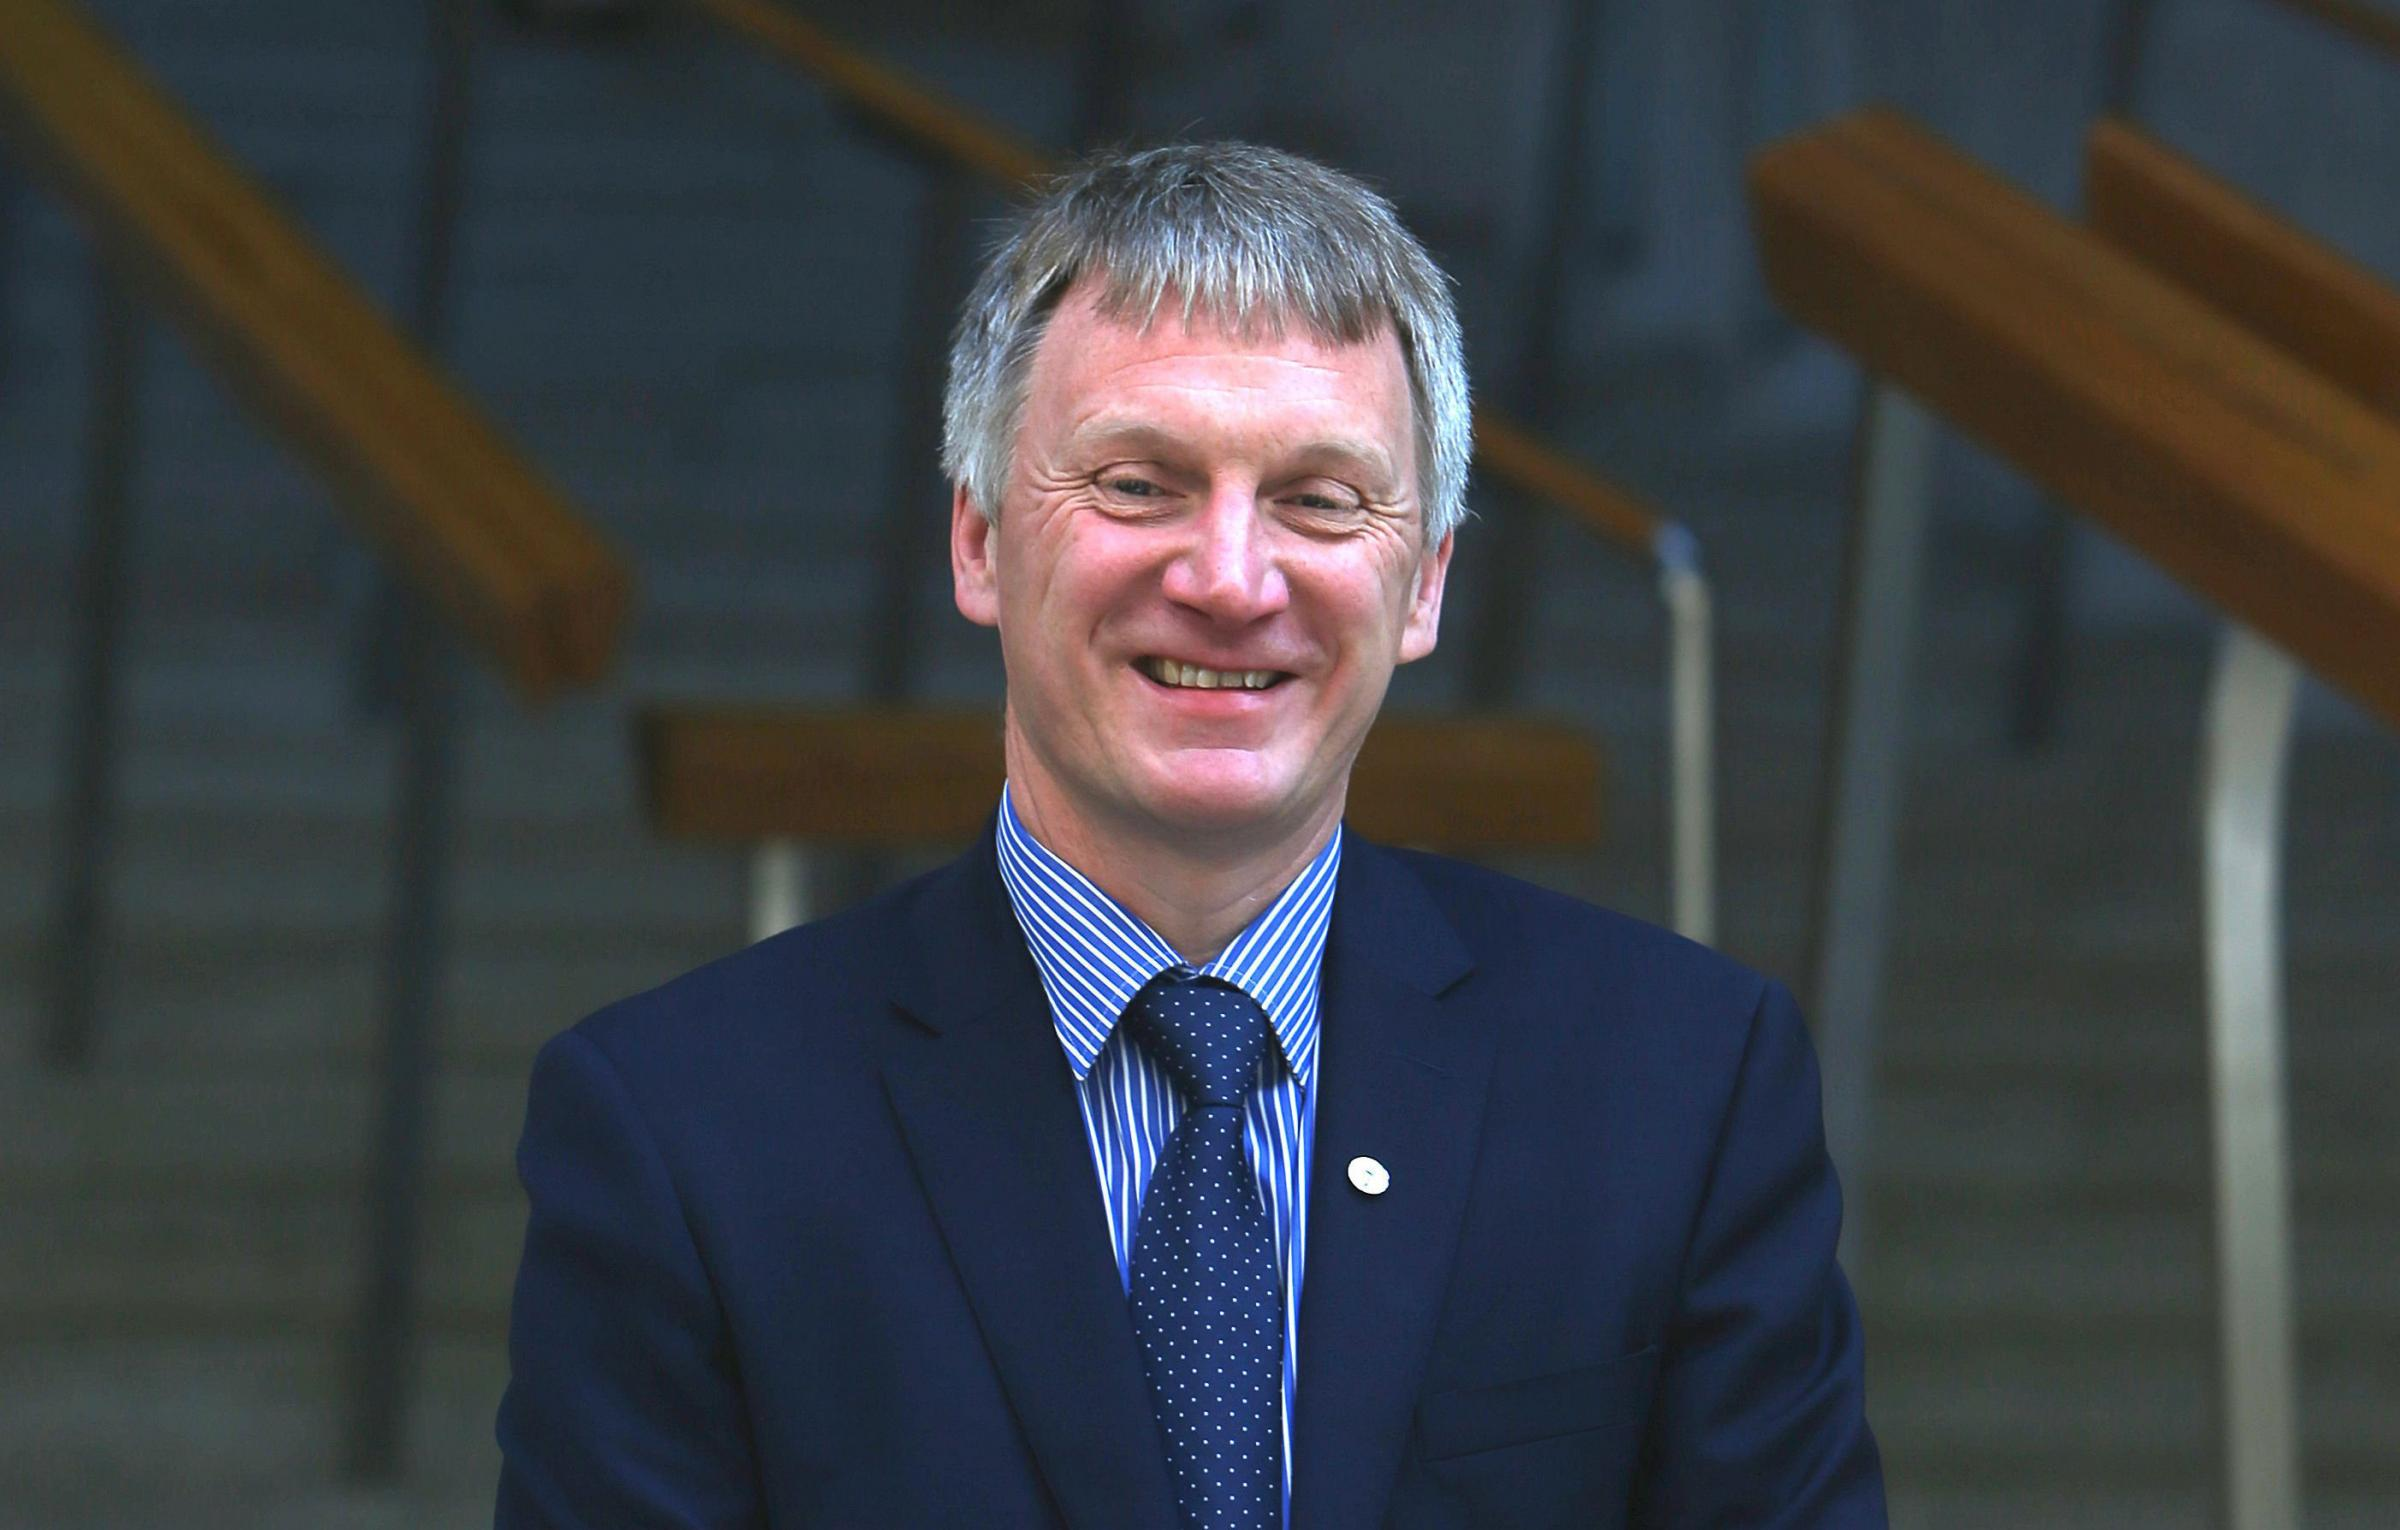 The SNP's Ivan McKee stressed the importance of remaining in the customs union and single market